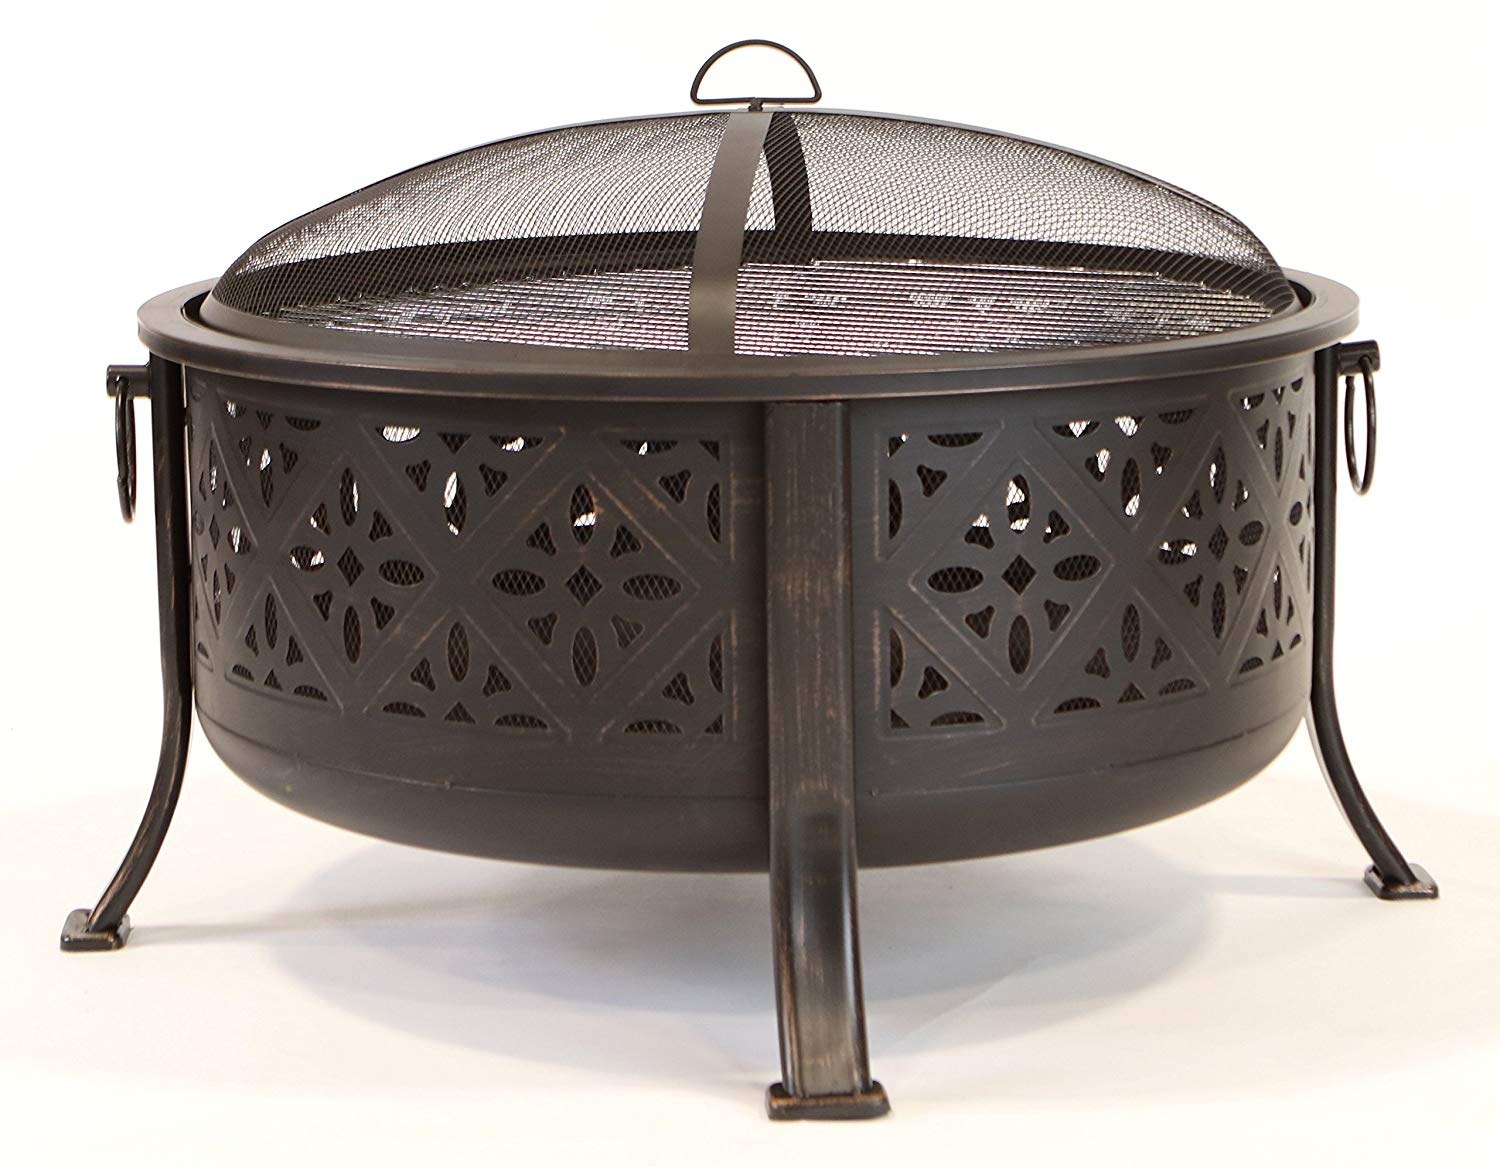 """ISO Fire Pit - 30"""" Round Bowl and BBQ, Includes Grate, Mesh Cover, Poker"""